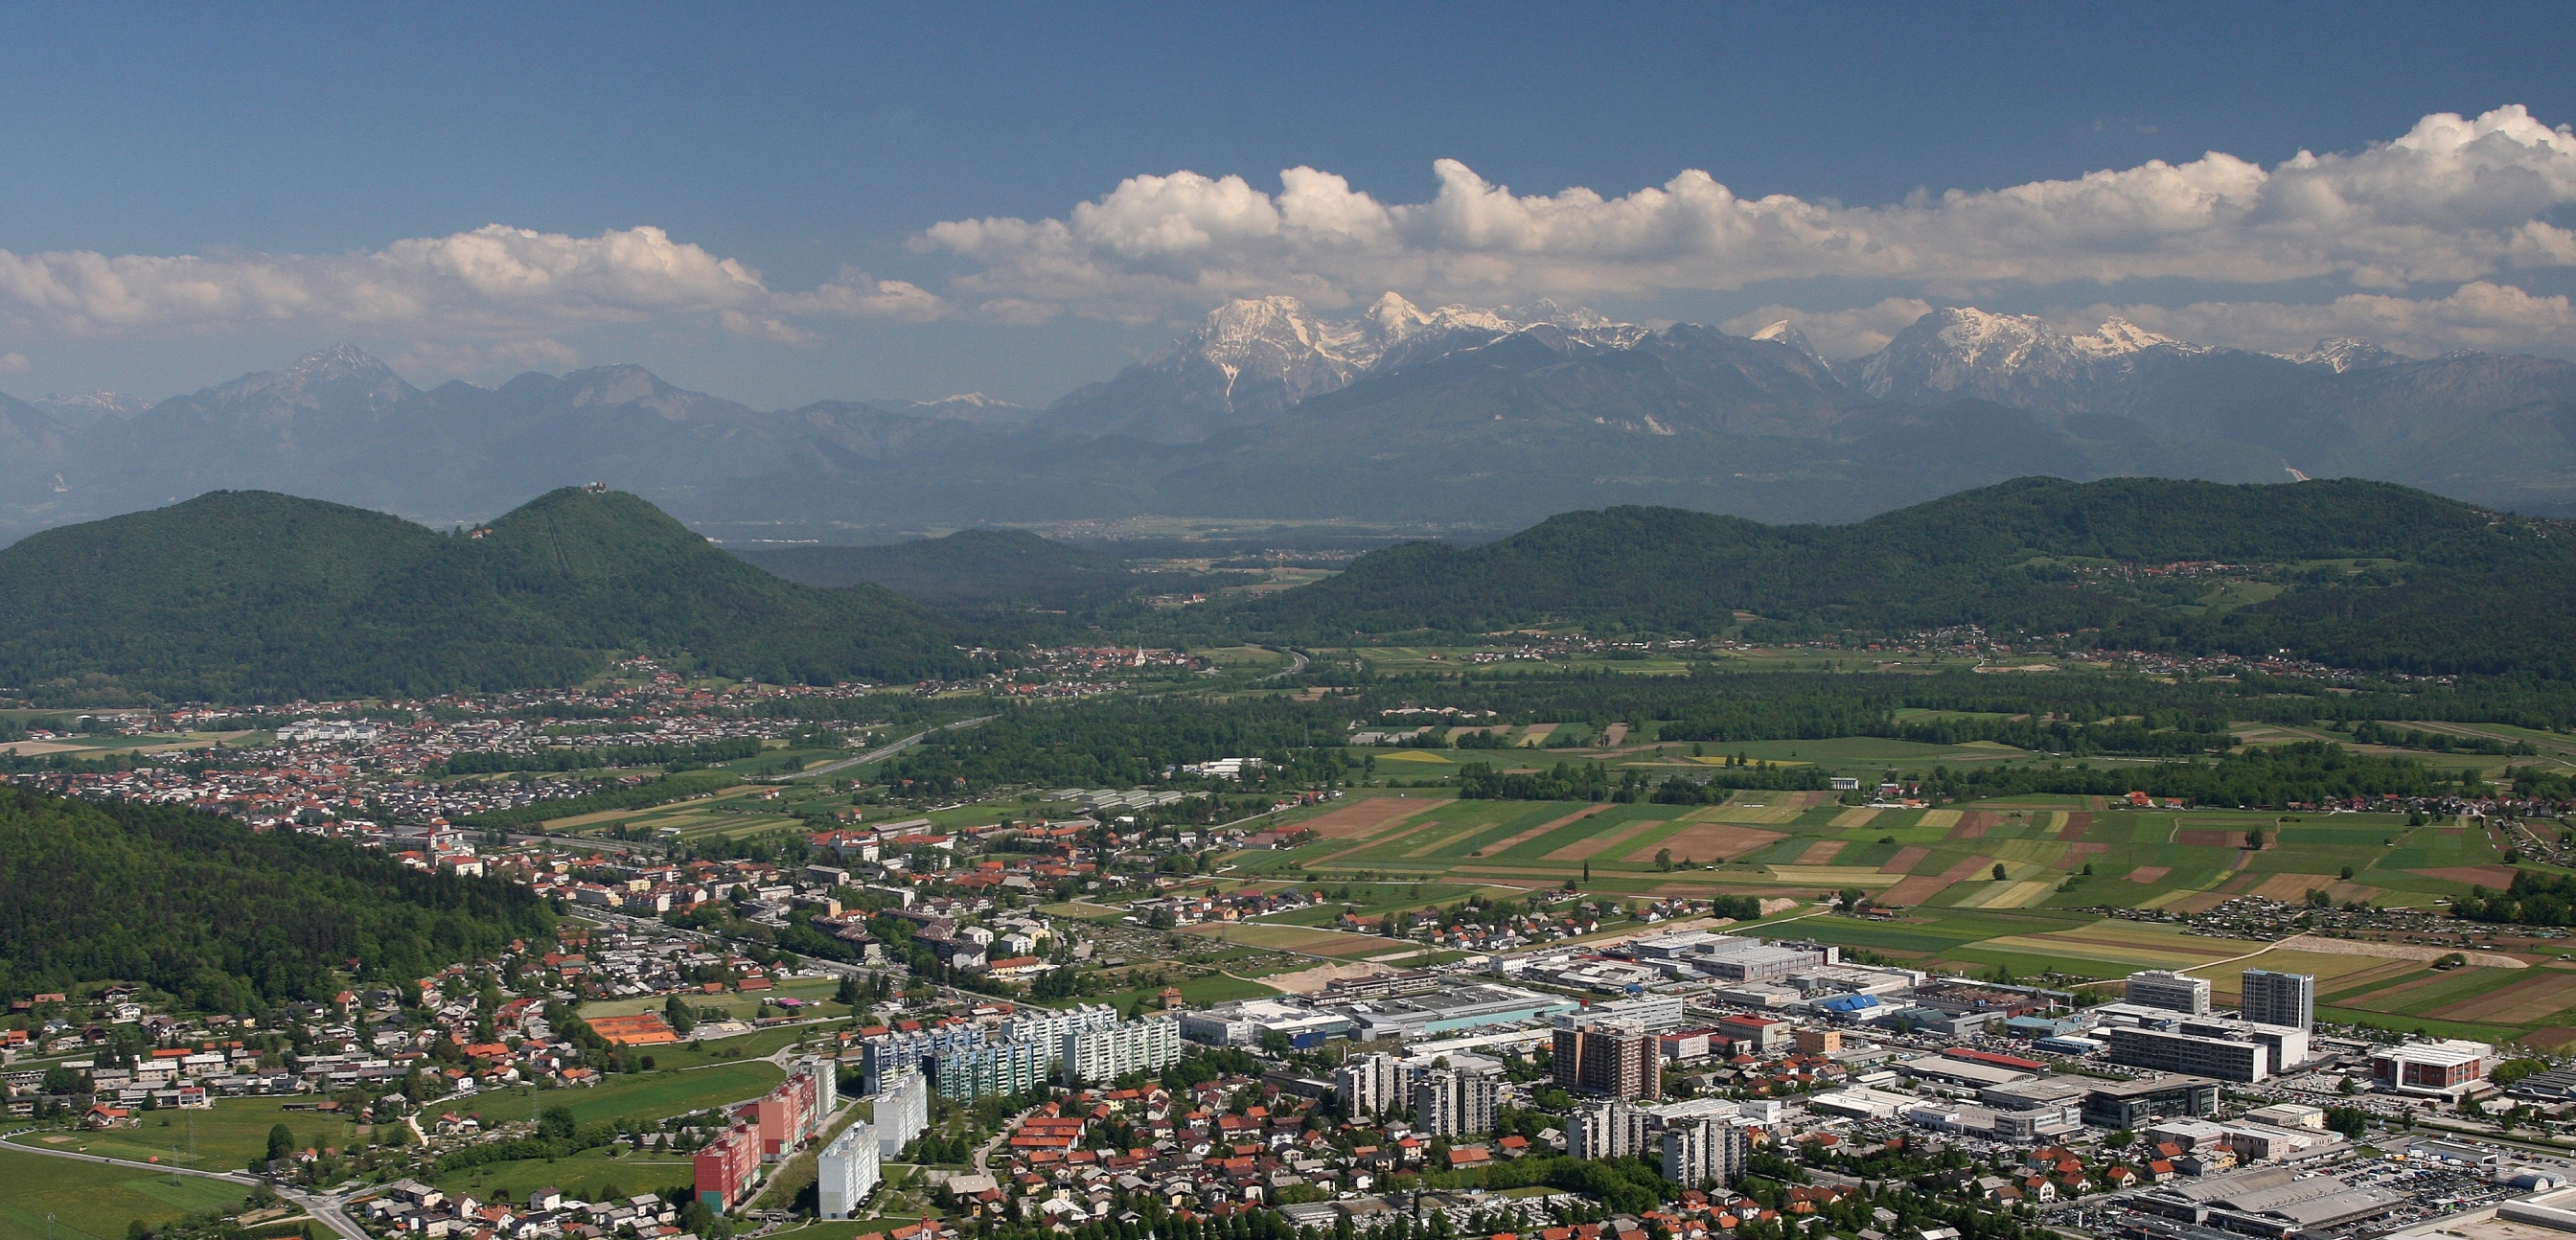 Lubljana Dravlje with snow capped Alps behind